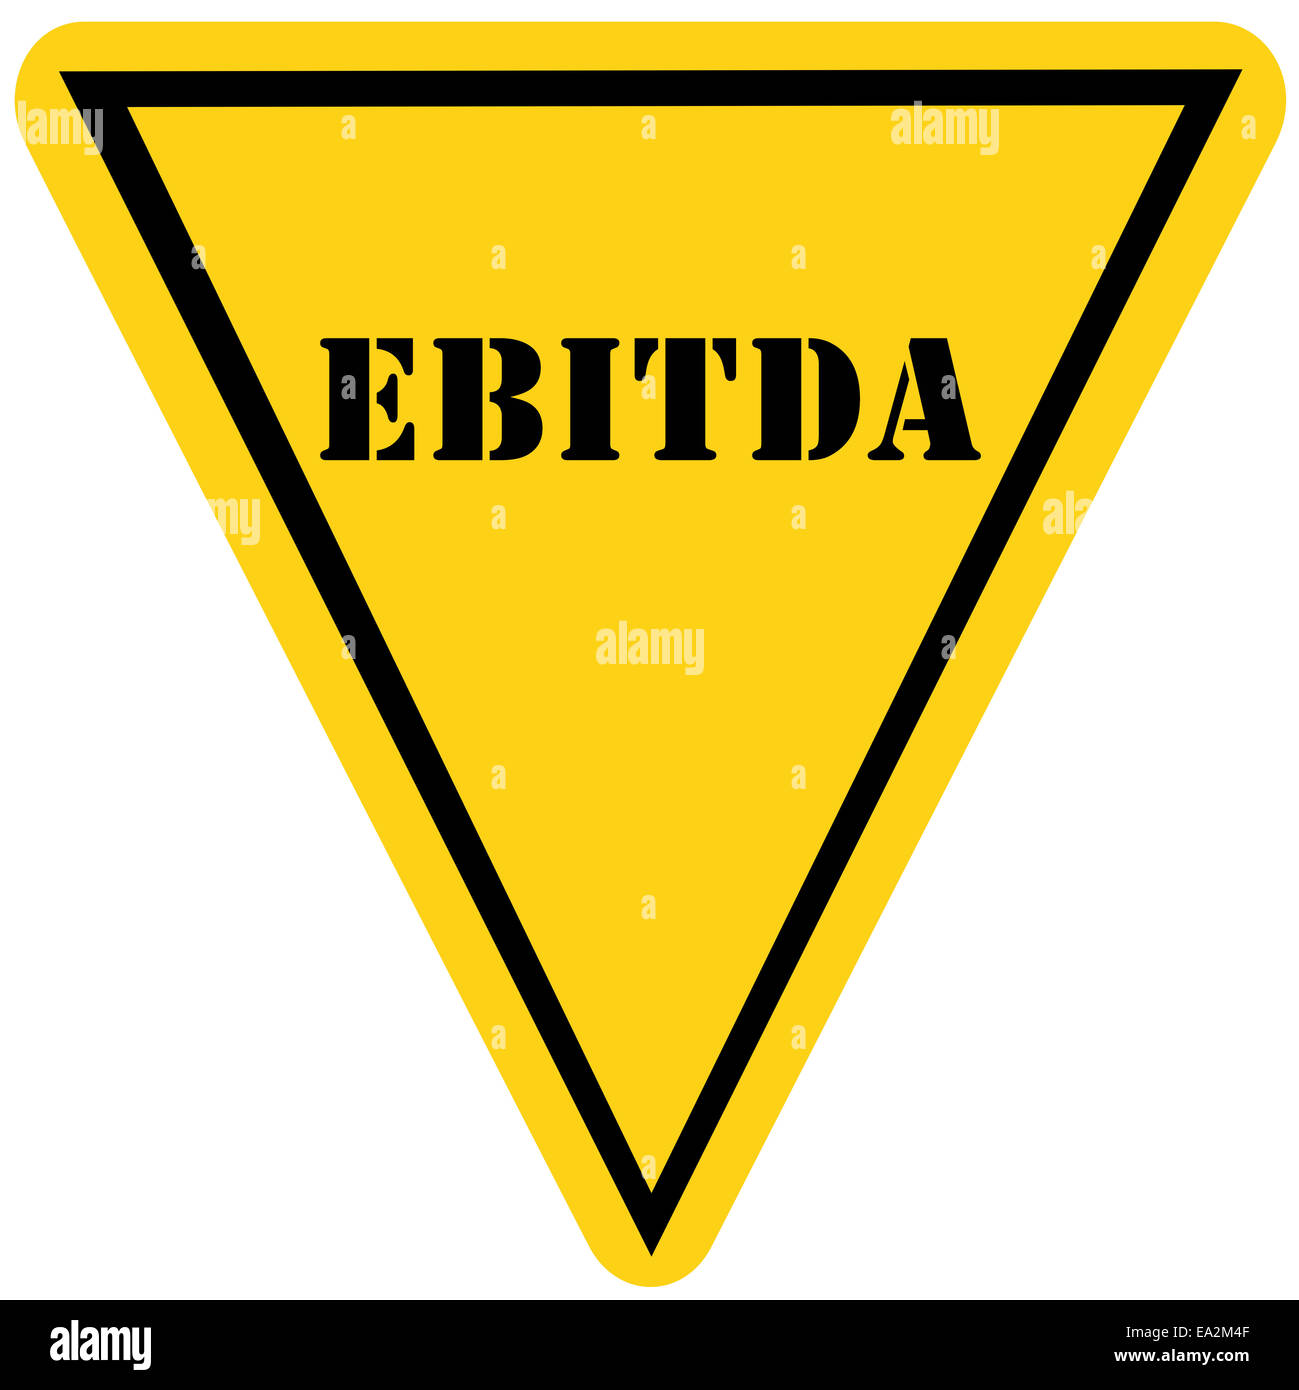 A yellow and black triangle shaped road sign with the word ebitda a yellow and black triangle shaped road sign with the word ebitda making a great concept buycottarizona Images